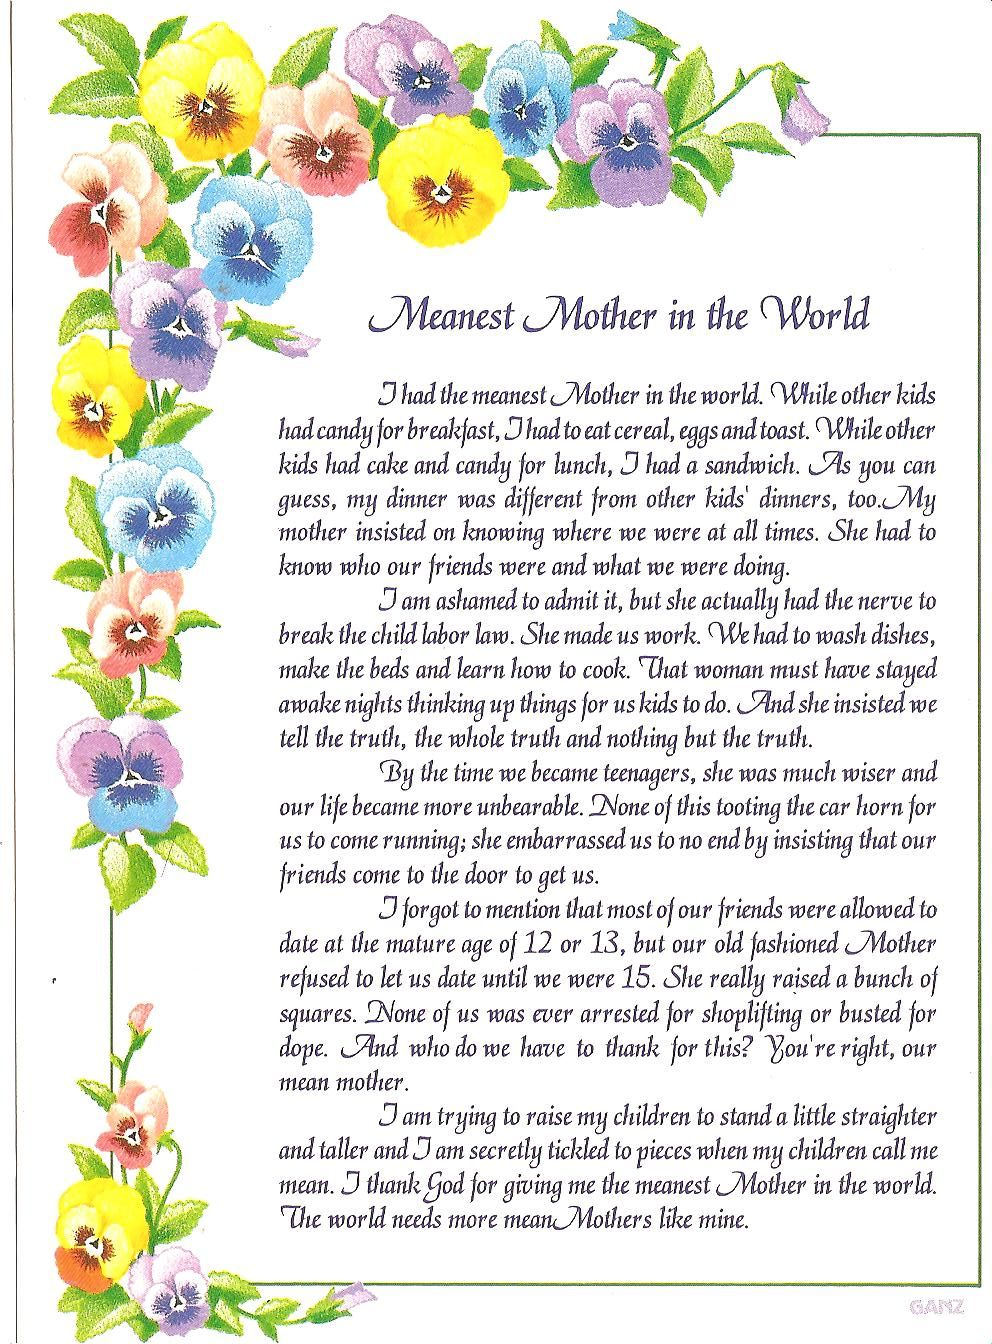 Meanest Mother Poem Jpg 992 1344 Mama Gedicht Mutter Gedichte